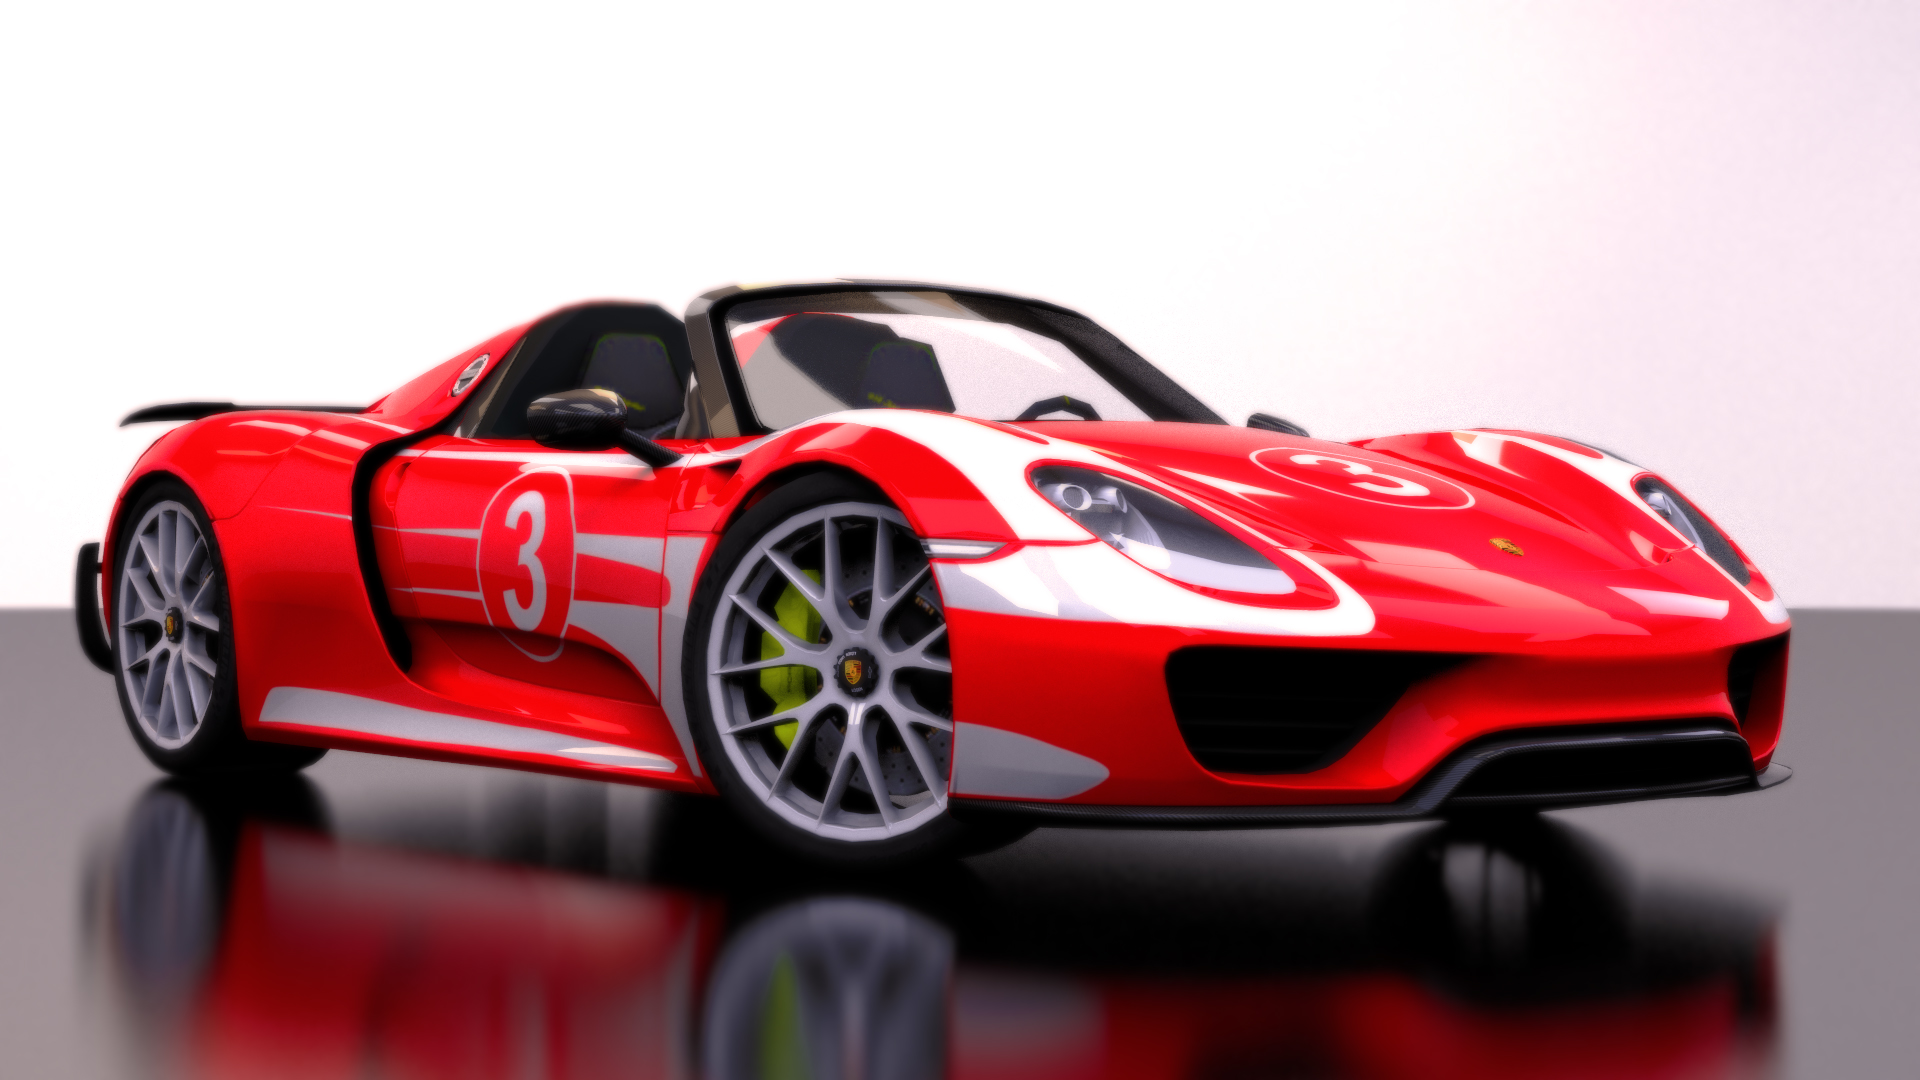 porsche 918 spyder weissach package red by bfg 9krc on. Black Bedroom Furniture Sets. Home Design Ideas